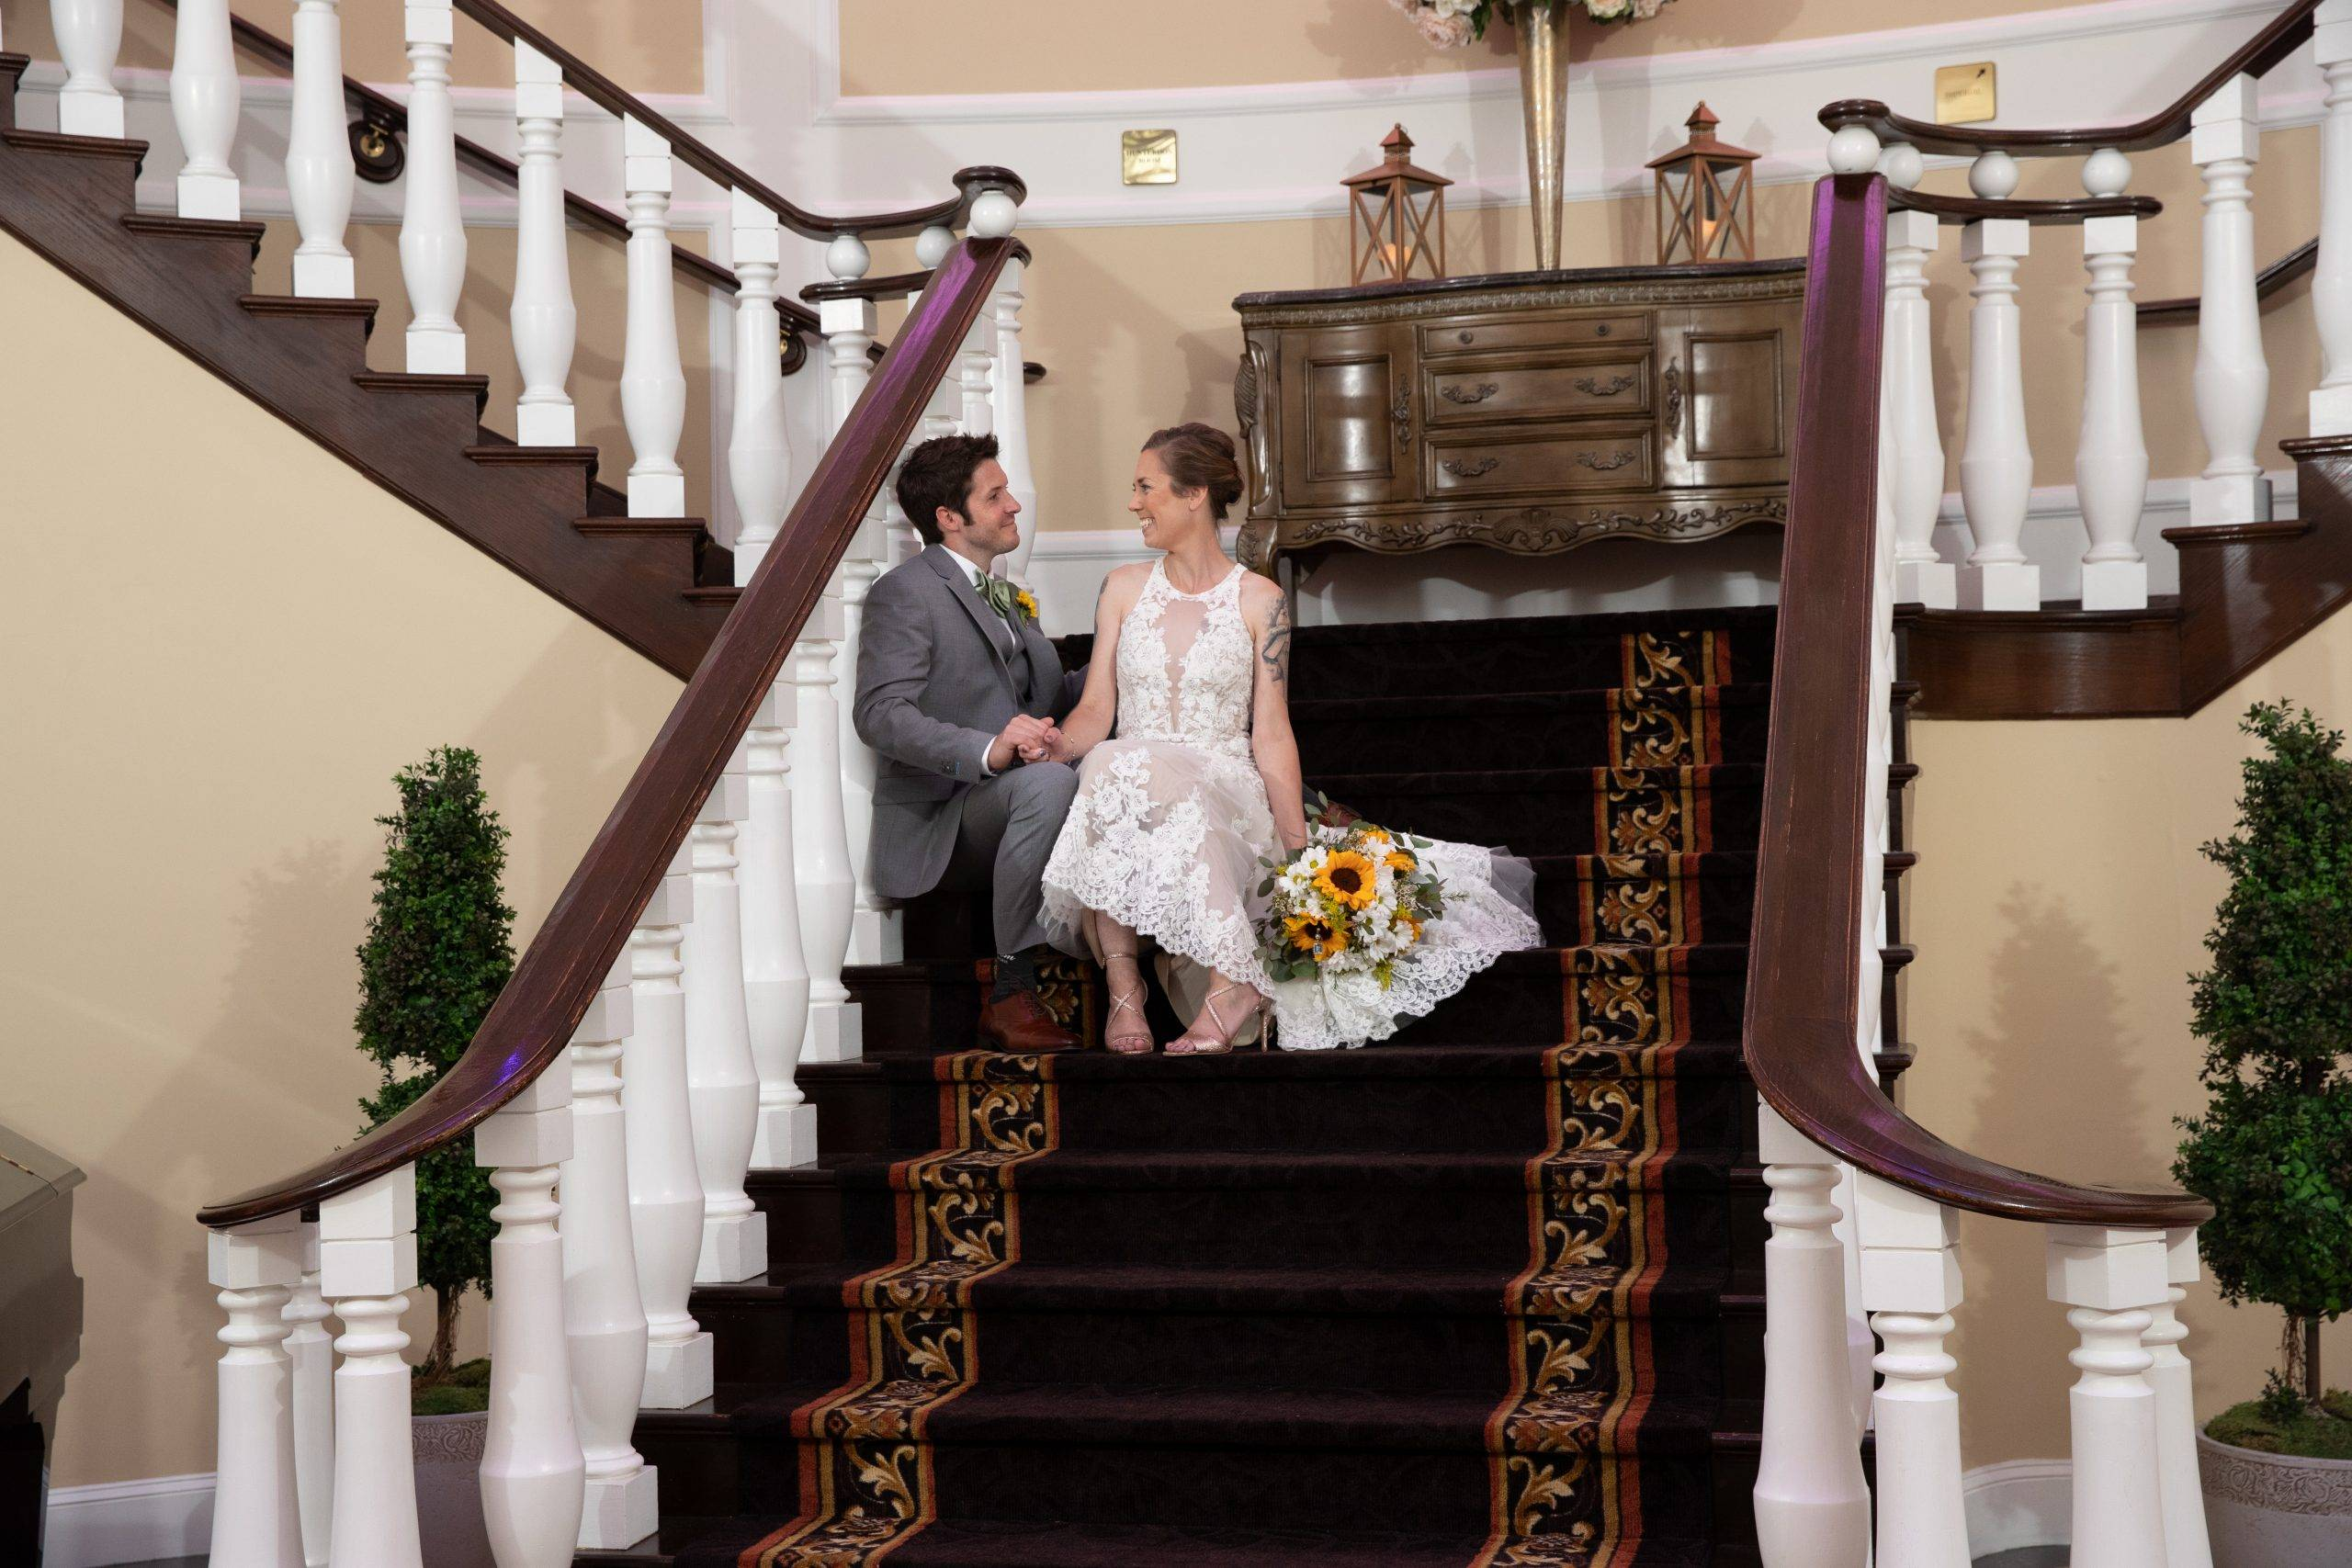 Bridgewater Manor bride and groom relax on staircase